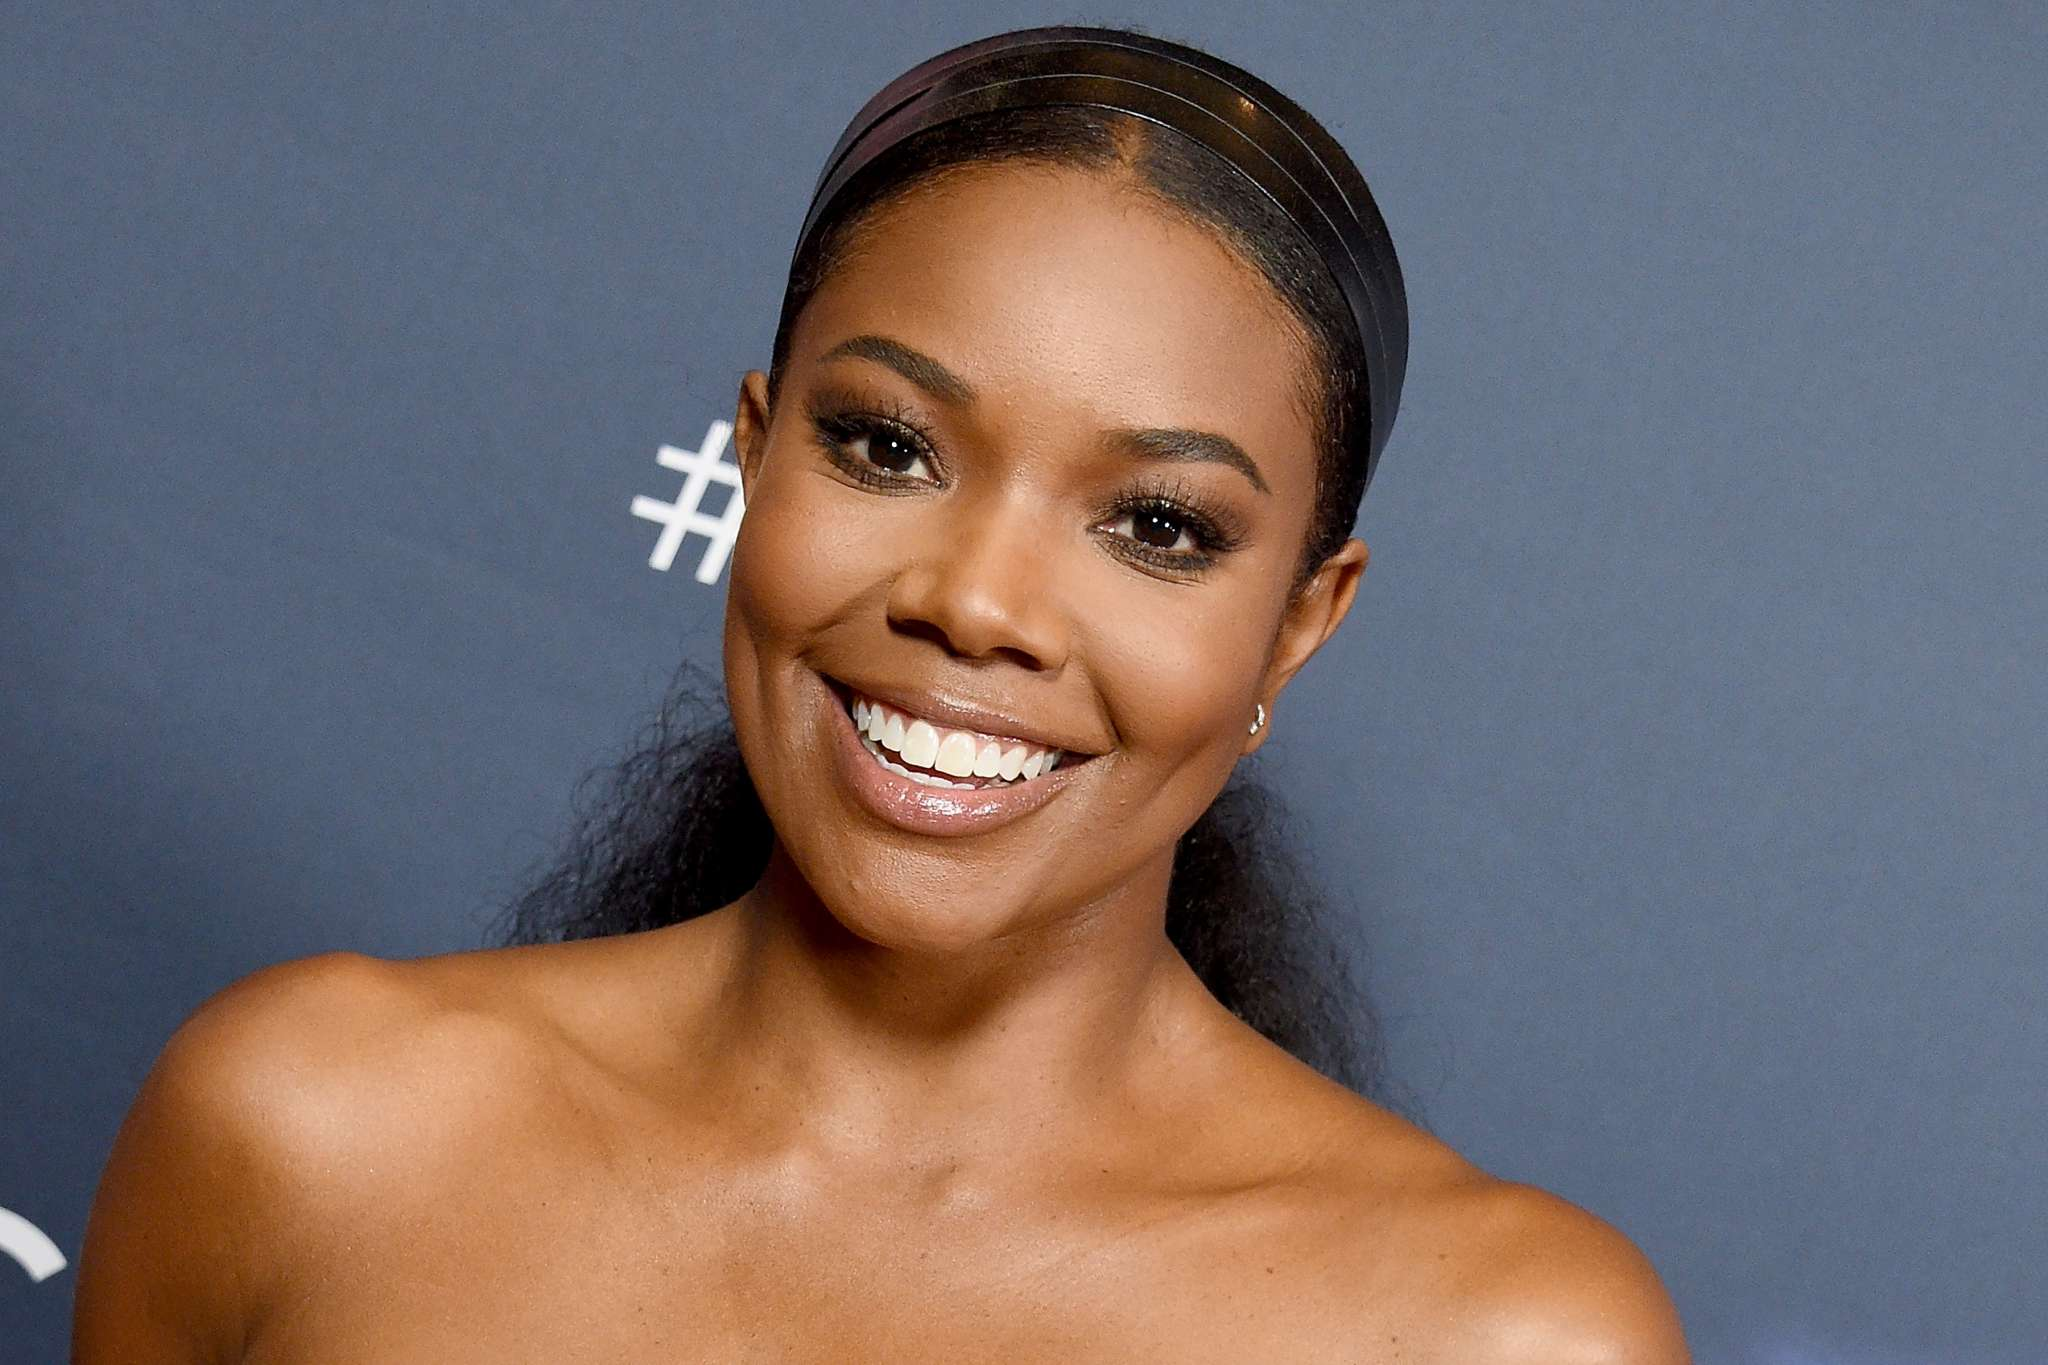 Gabrielle Union Makes Fans Emotional With These Photos Featuring Her Mother